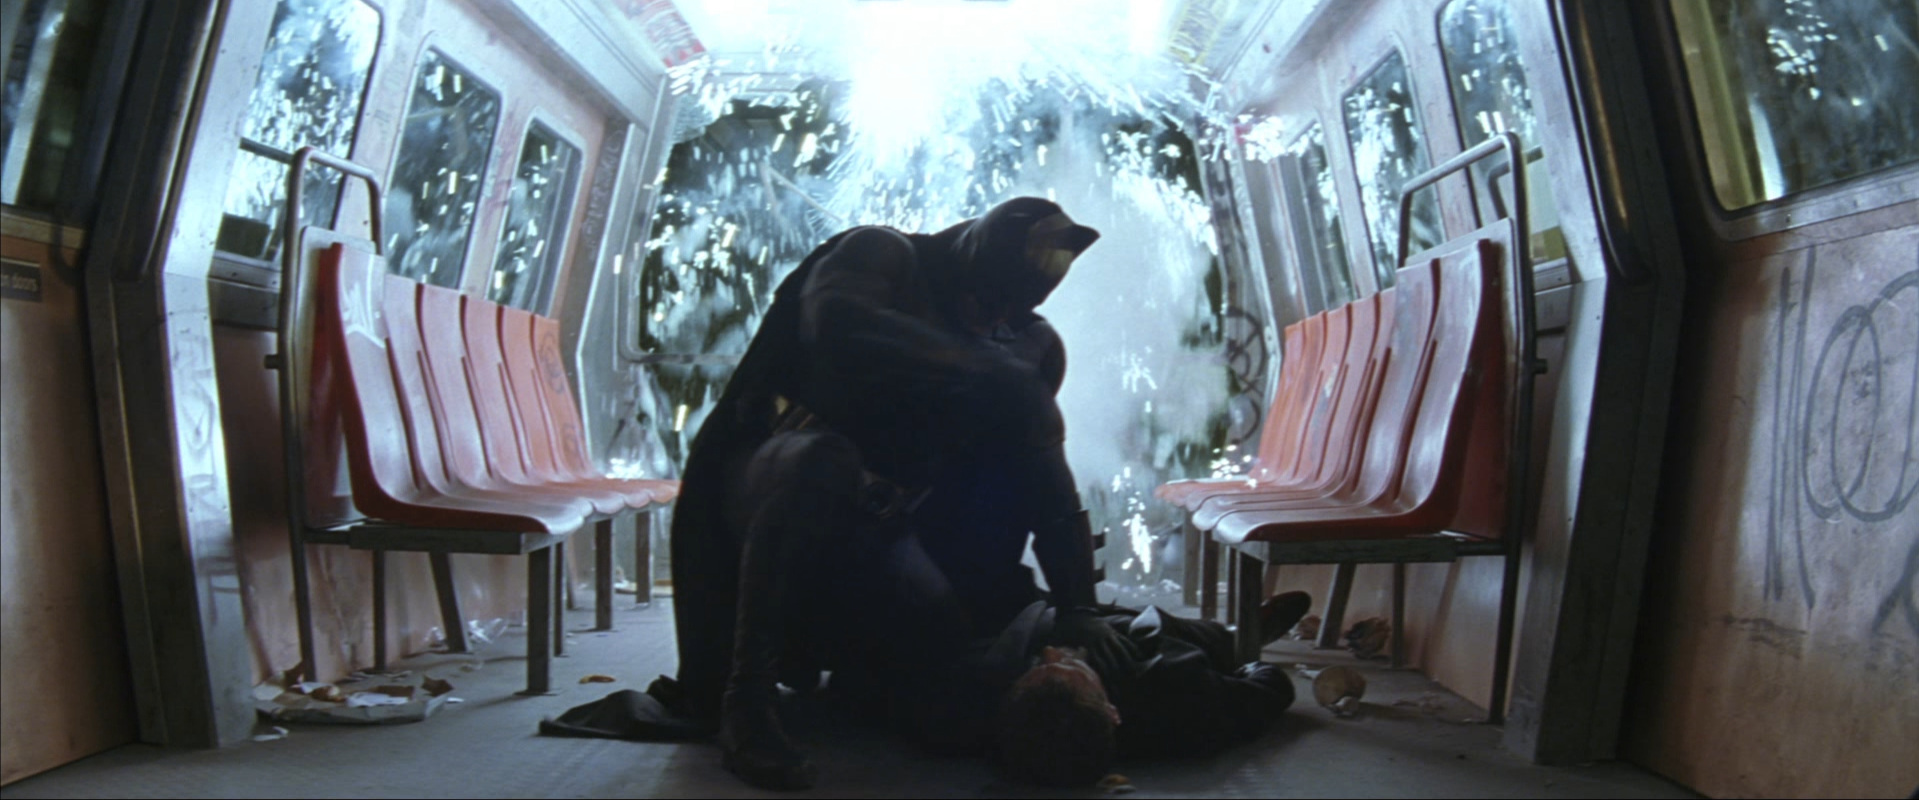 """Batman Begins  (2005): Batman's dubious morality as a reflection of the American approach to the """"global war on terror"""""""